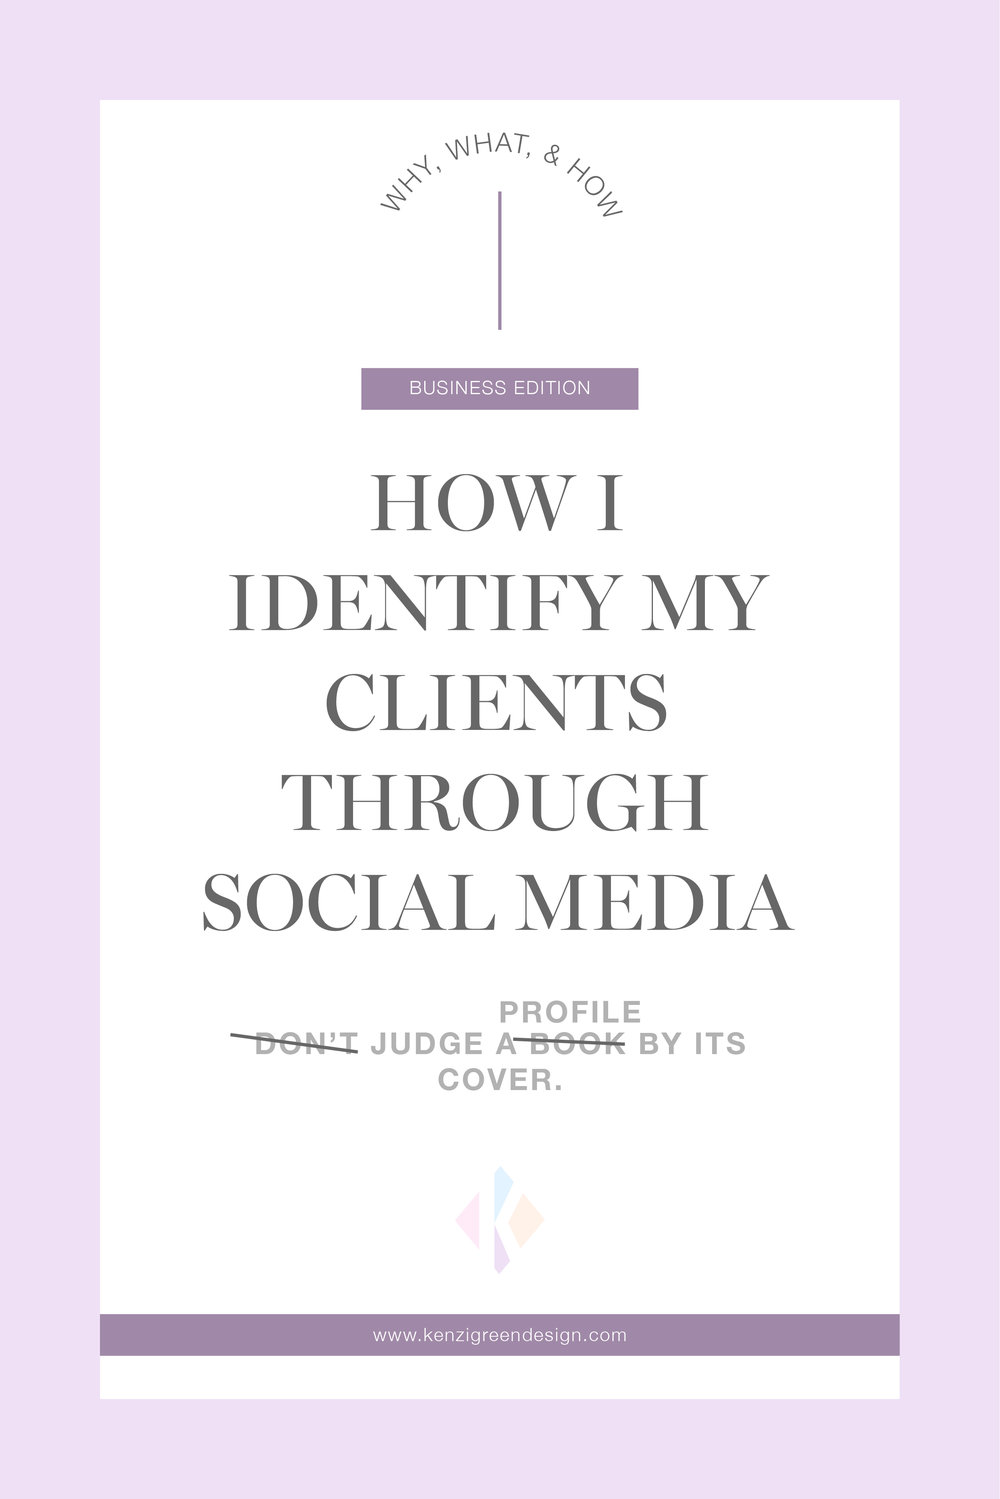 How I Identify My Clients Through Social Media #branding #businesstips #howtofindclients #businessstrategy